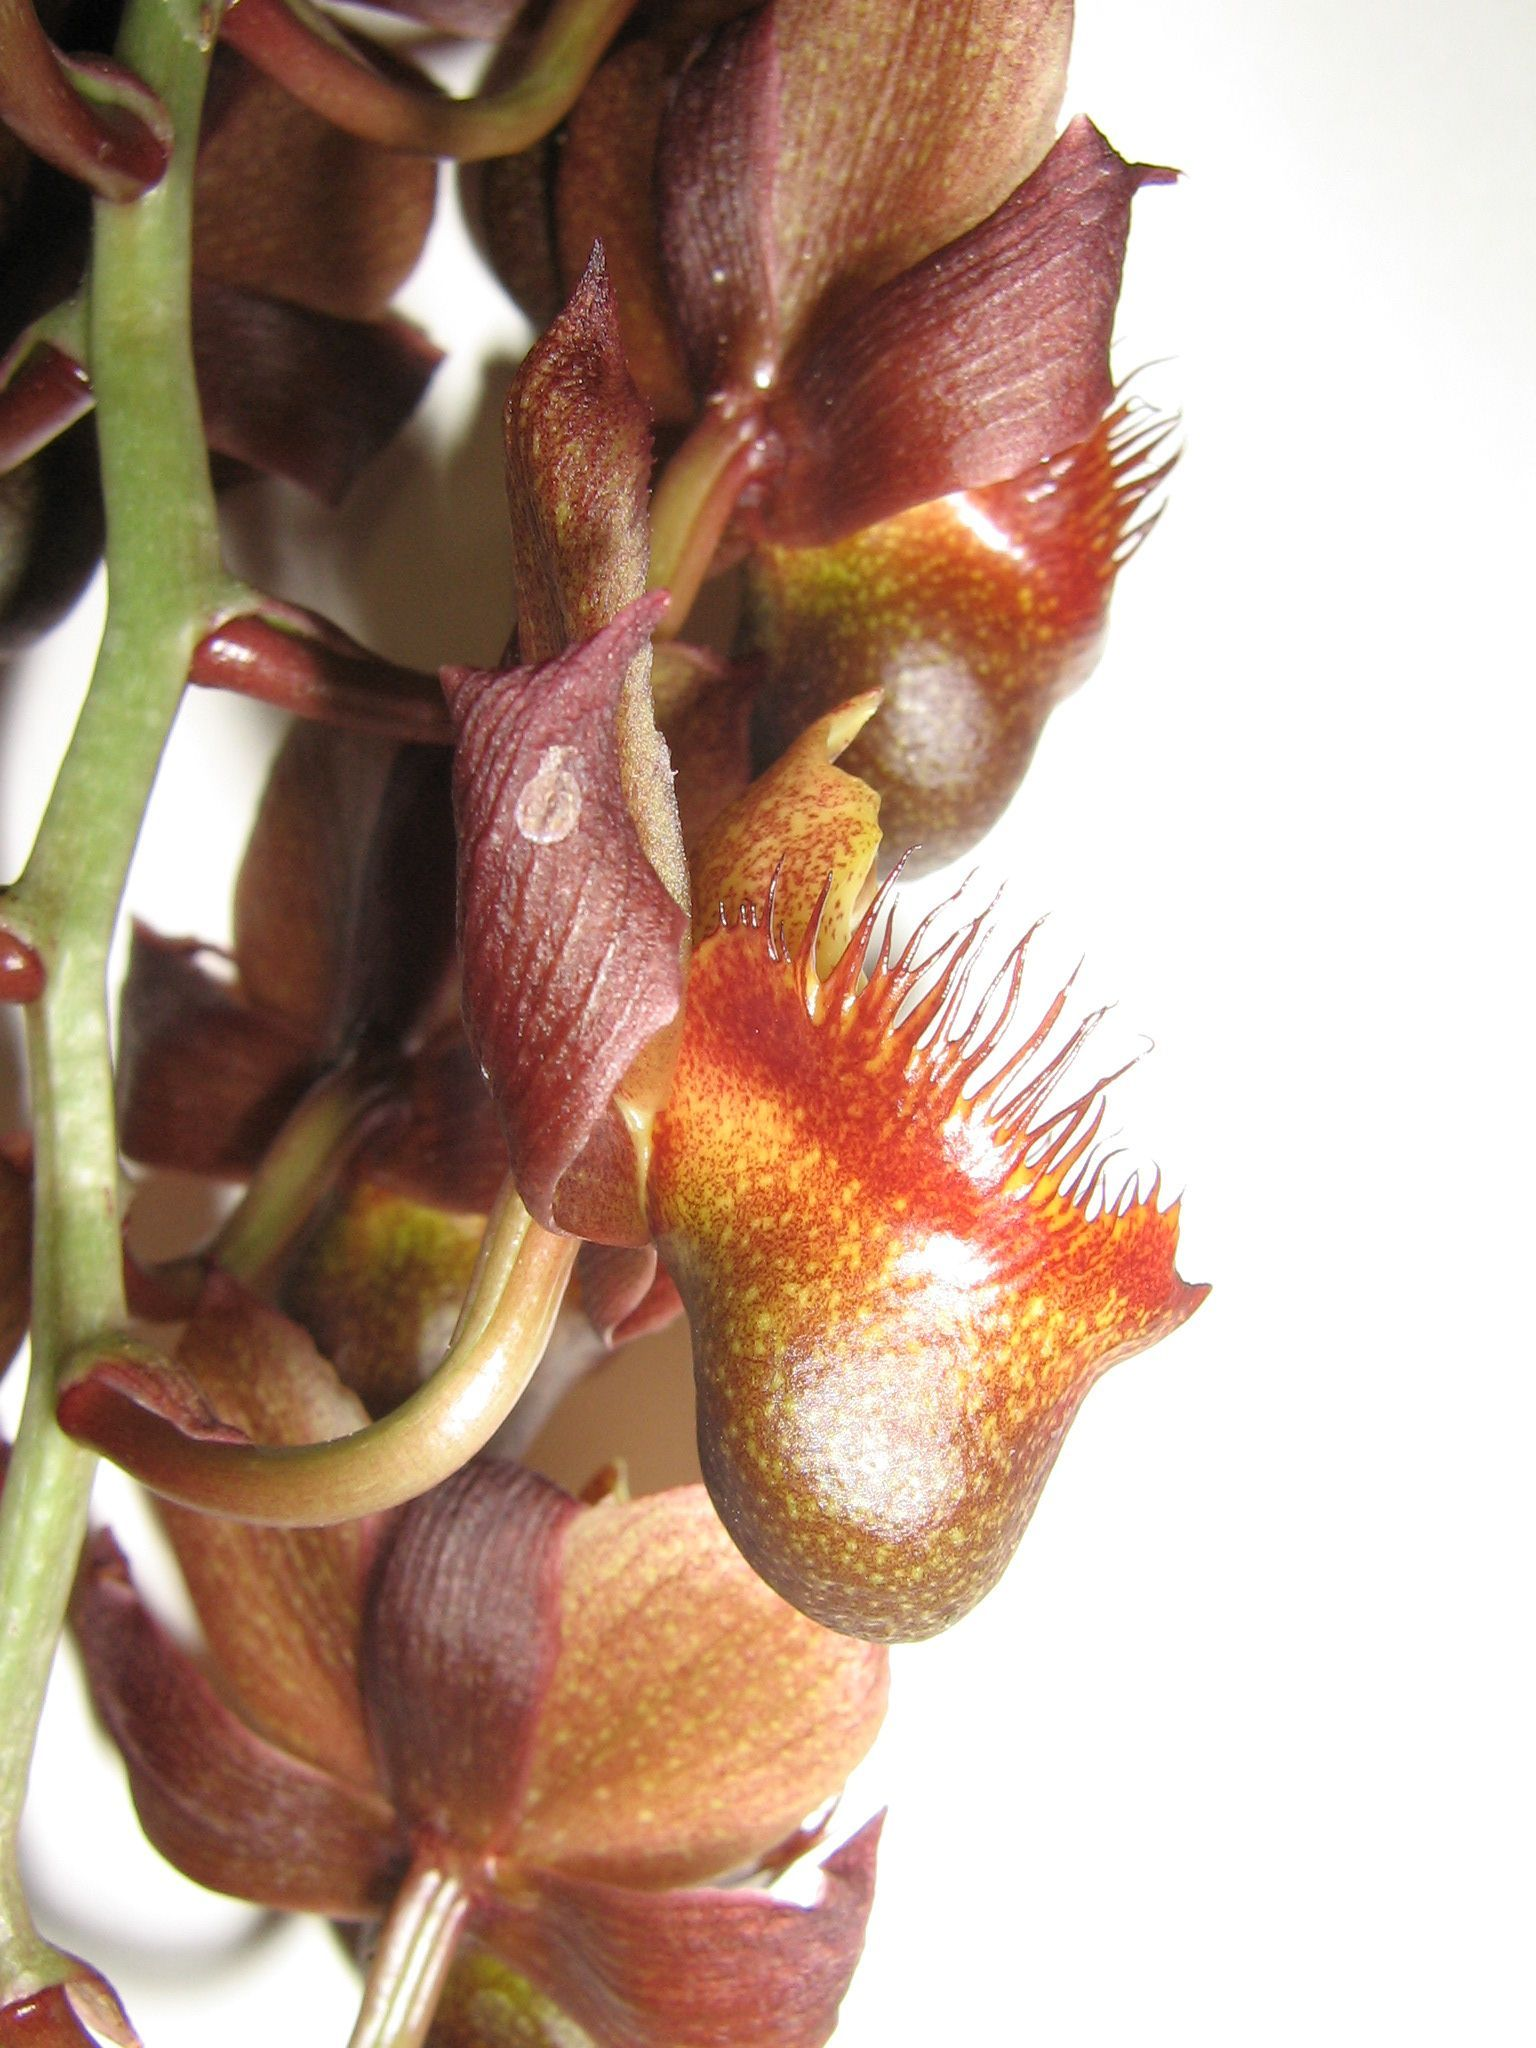 Catasetum apolloi - Male flowers in side-view